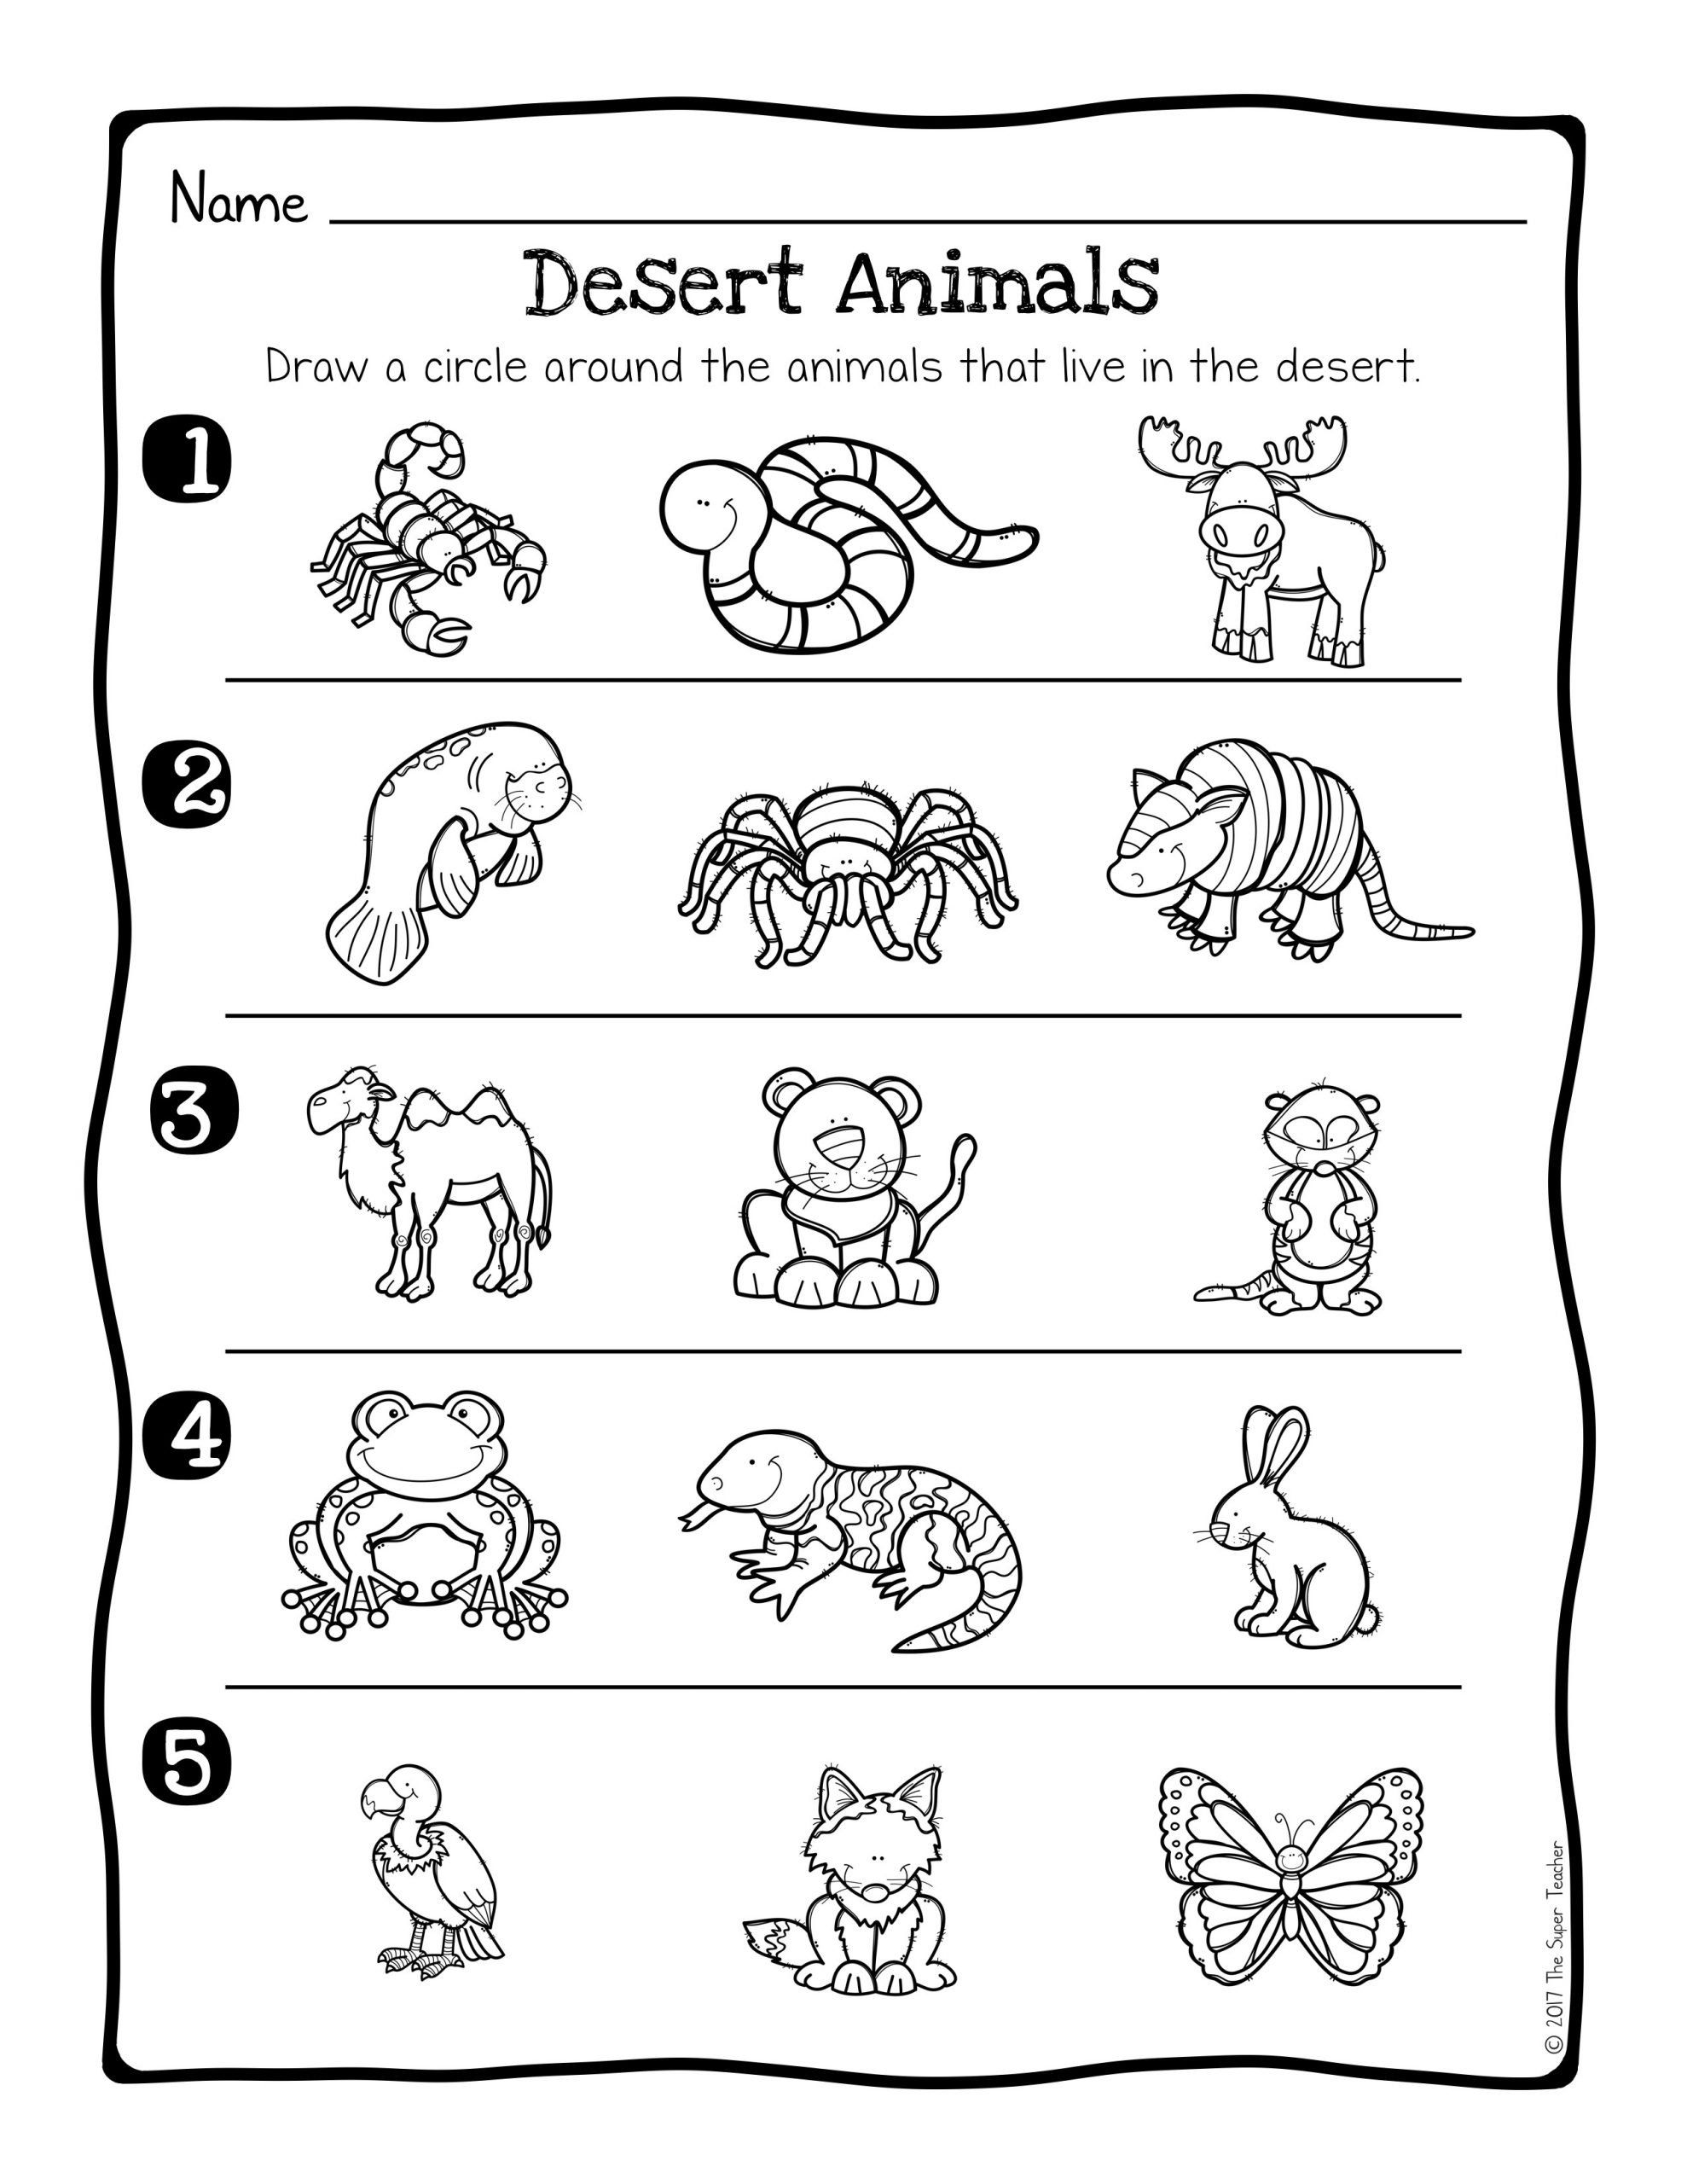 Georgia Habitats Worksheets Free   Printable Worksheets and Activities for  Teachers [ 2560 x 1978 Pixel ]